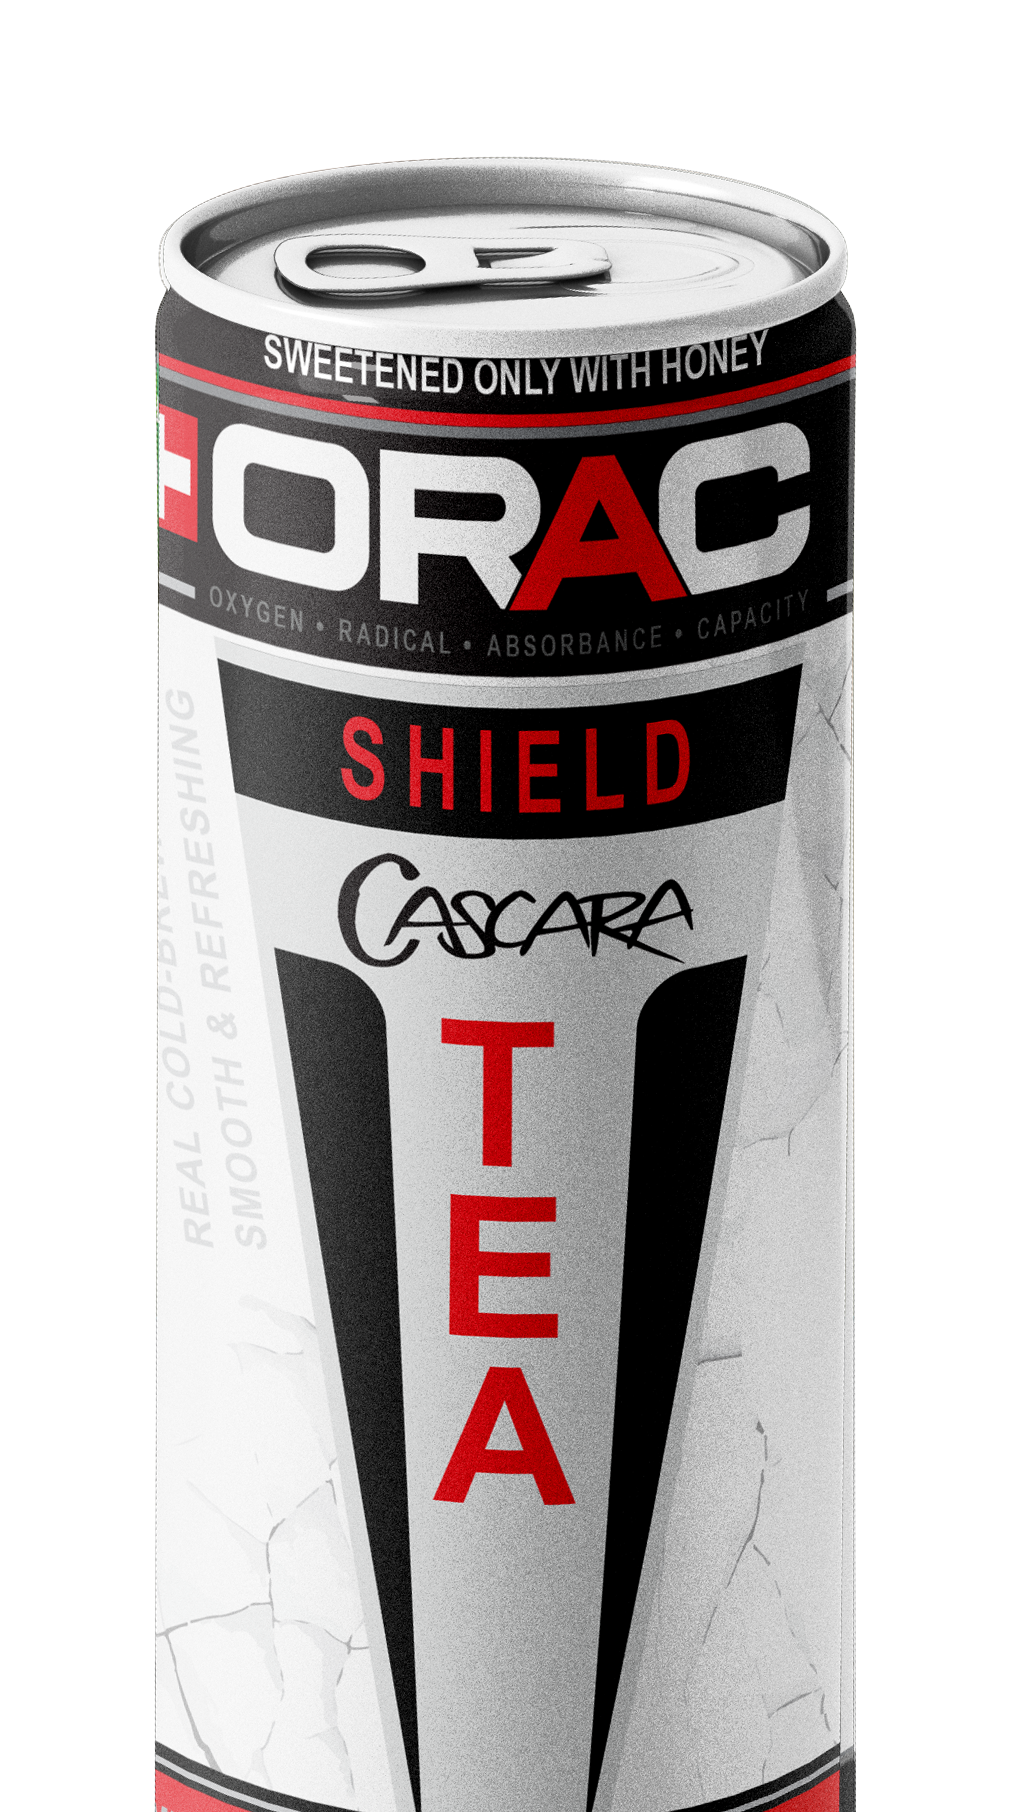 ORAC Teas | Cascara Shield